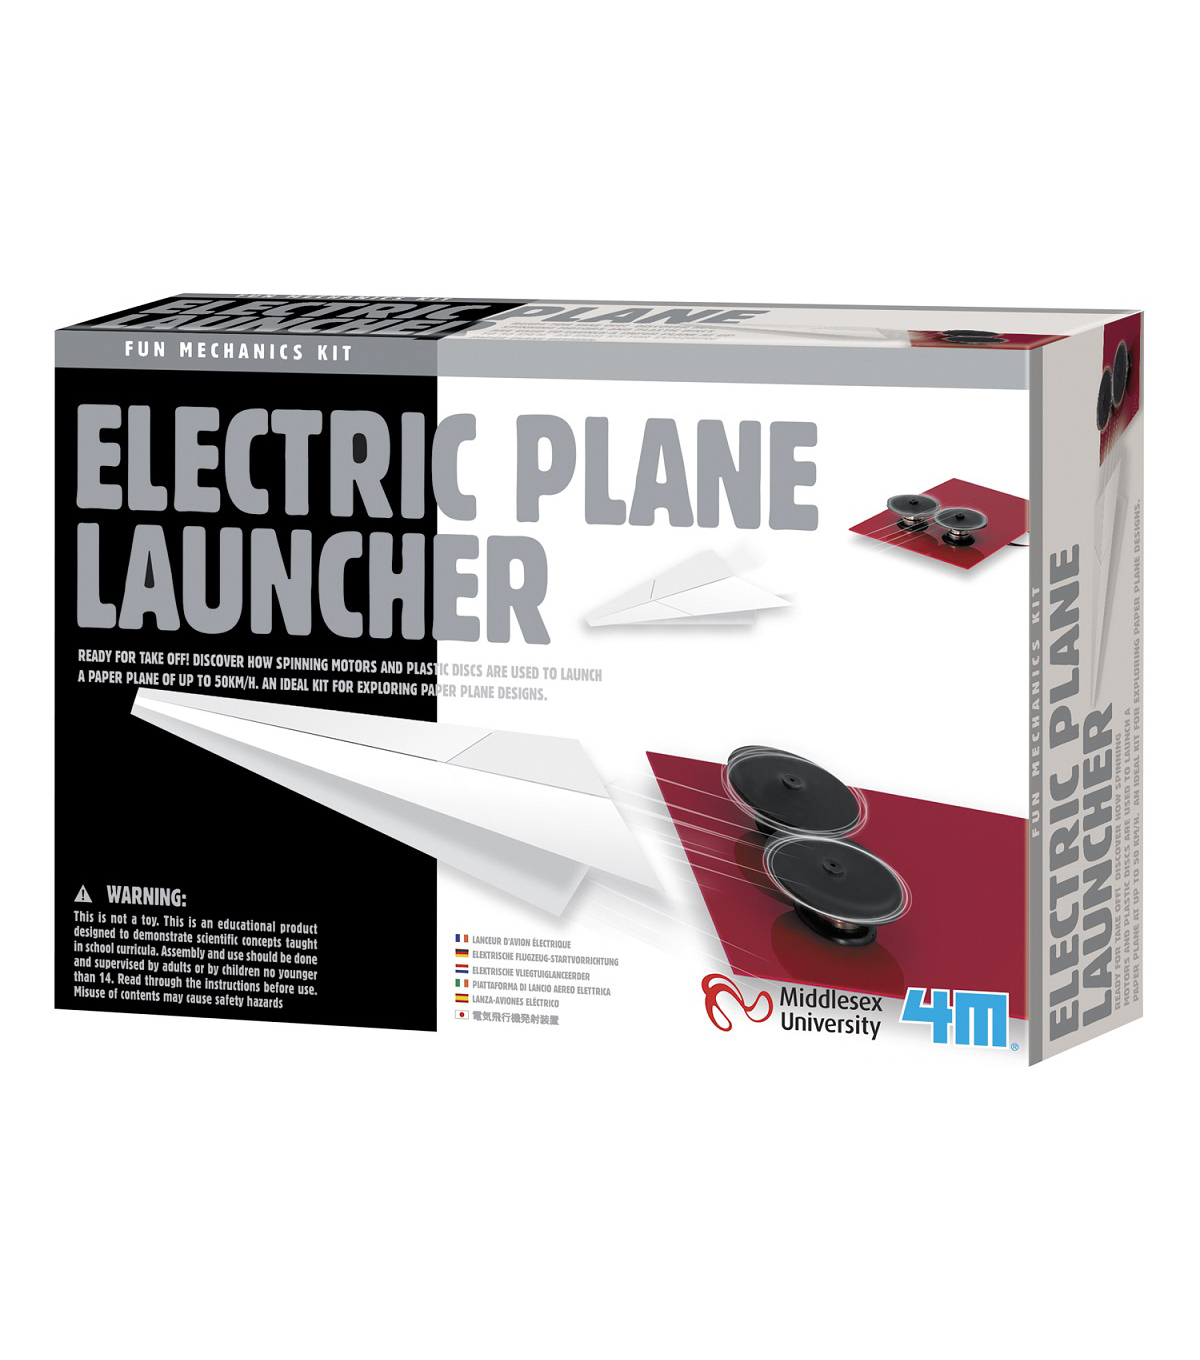 4M Fun Mechanics Electronic Paper Plane Launcher Kit